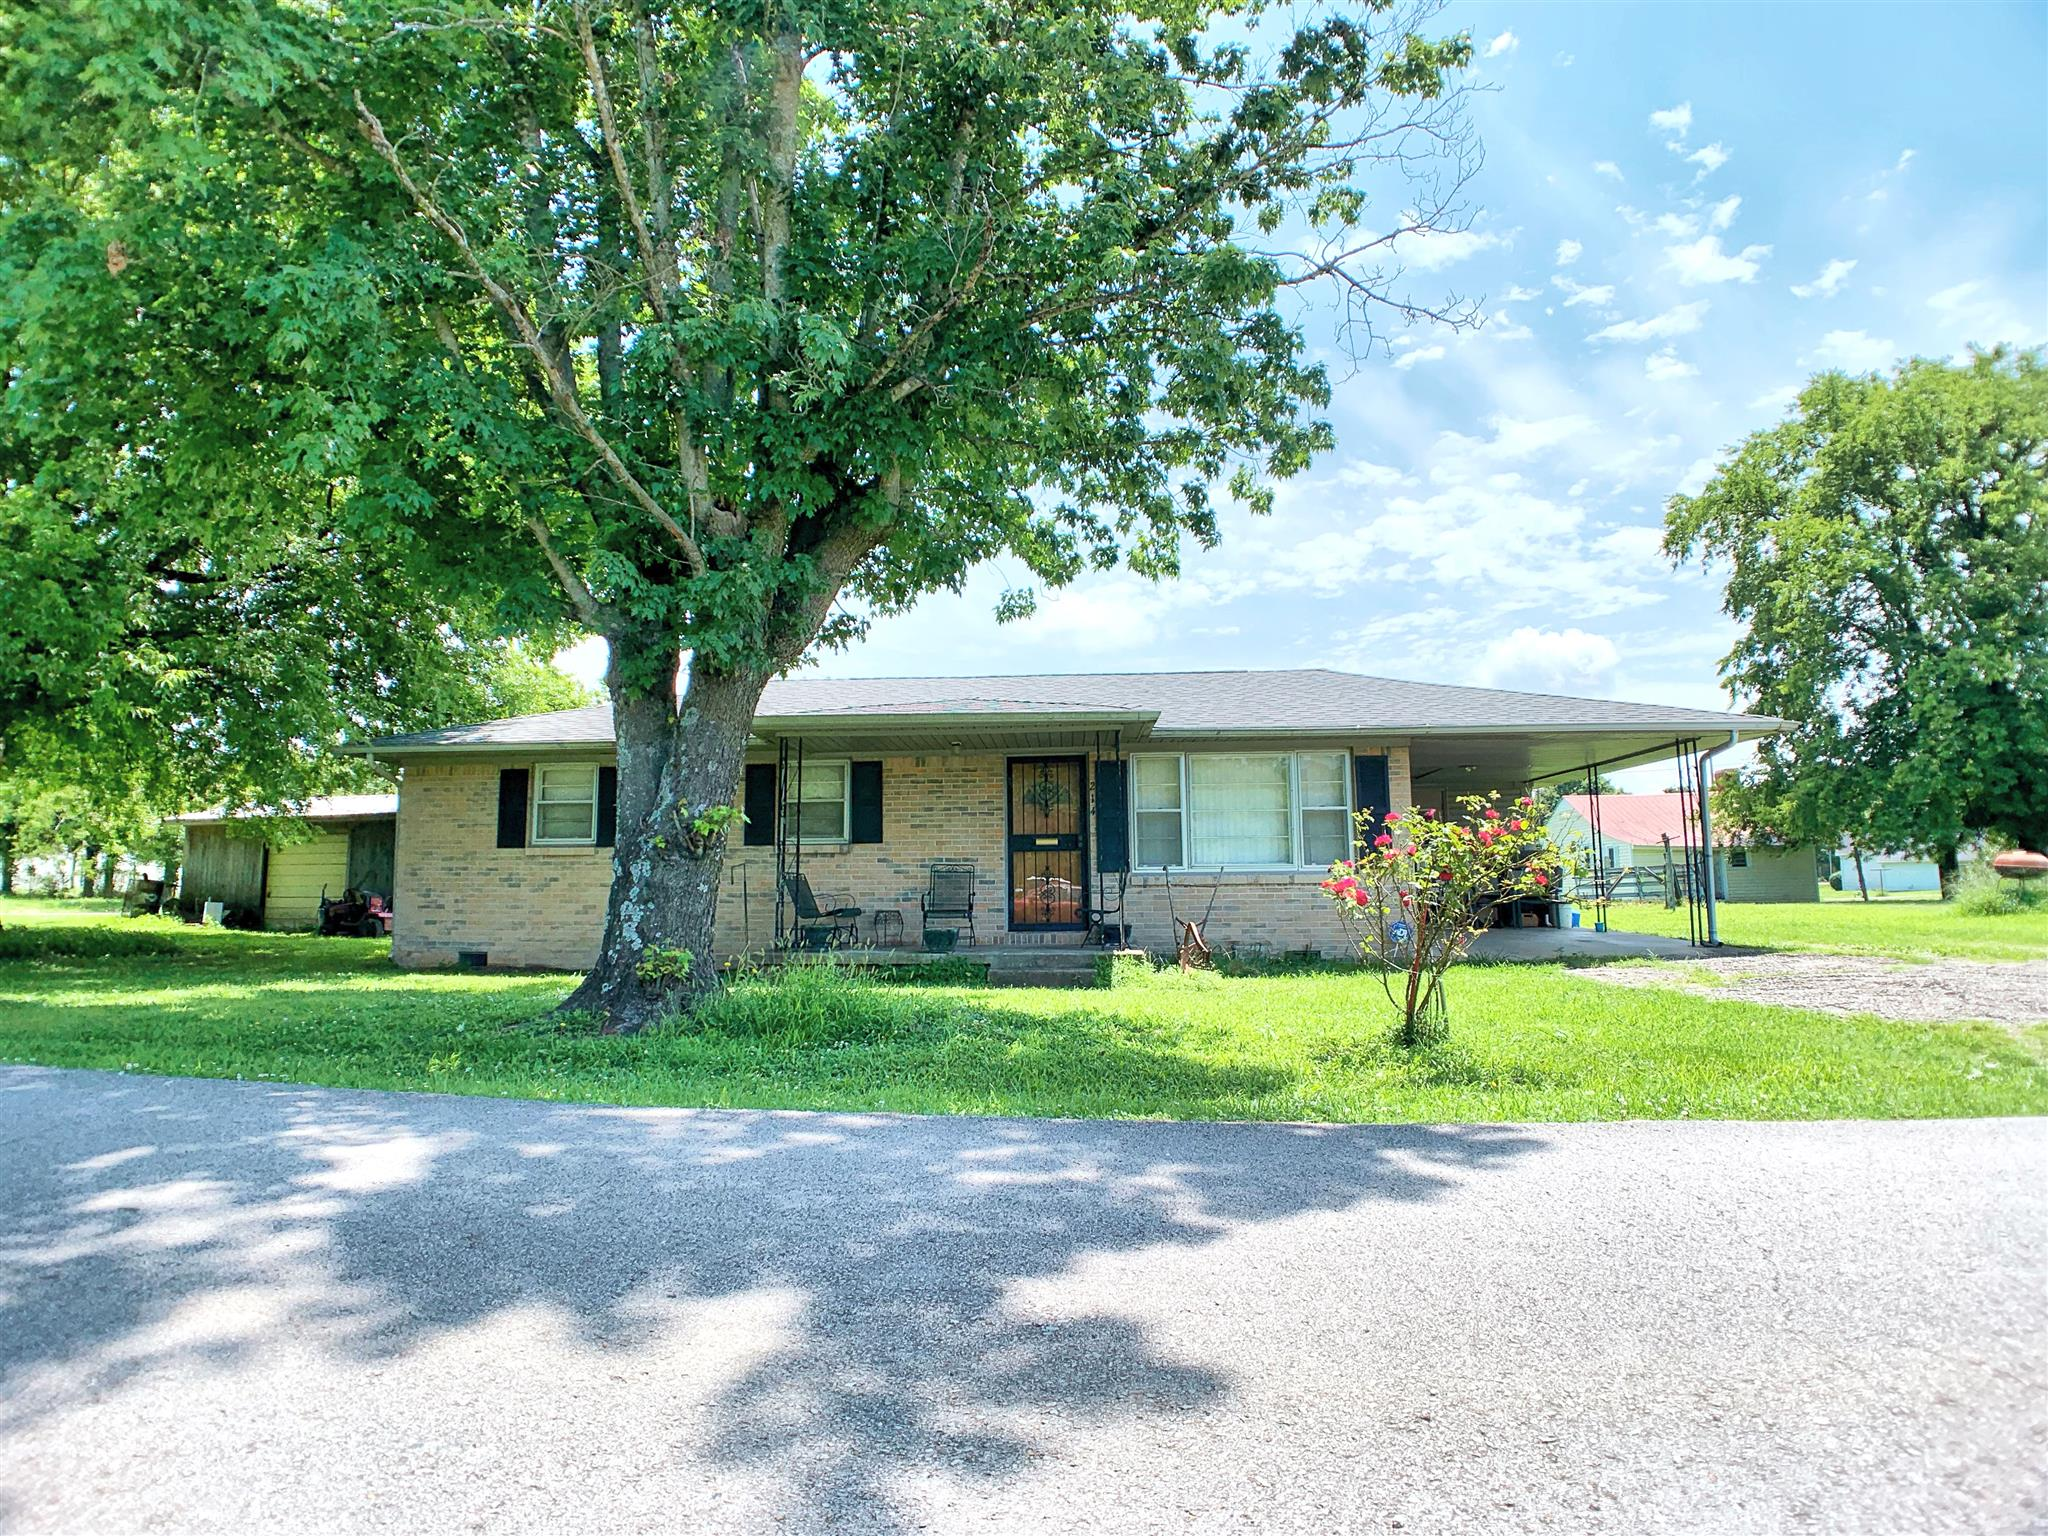 214 Second Waco St, Lynnville, TN 38472 - Lynnville, TN real estate listing